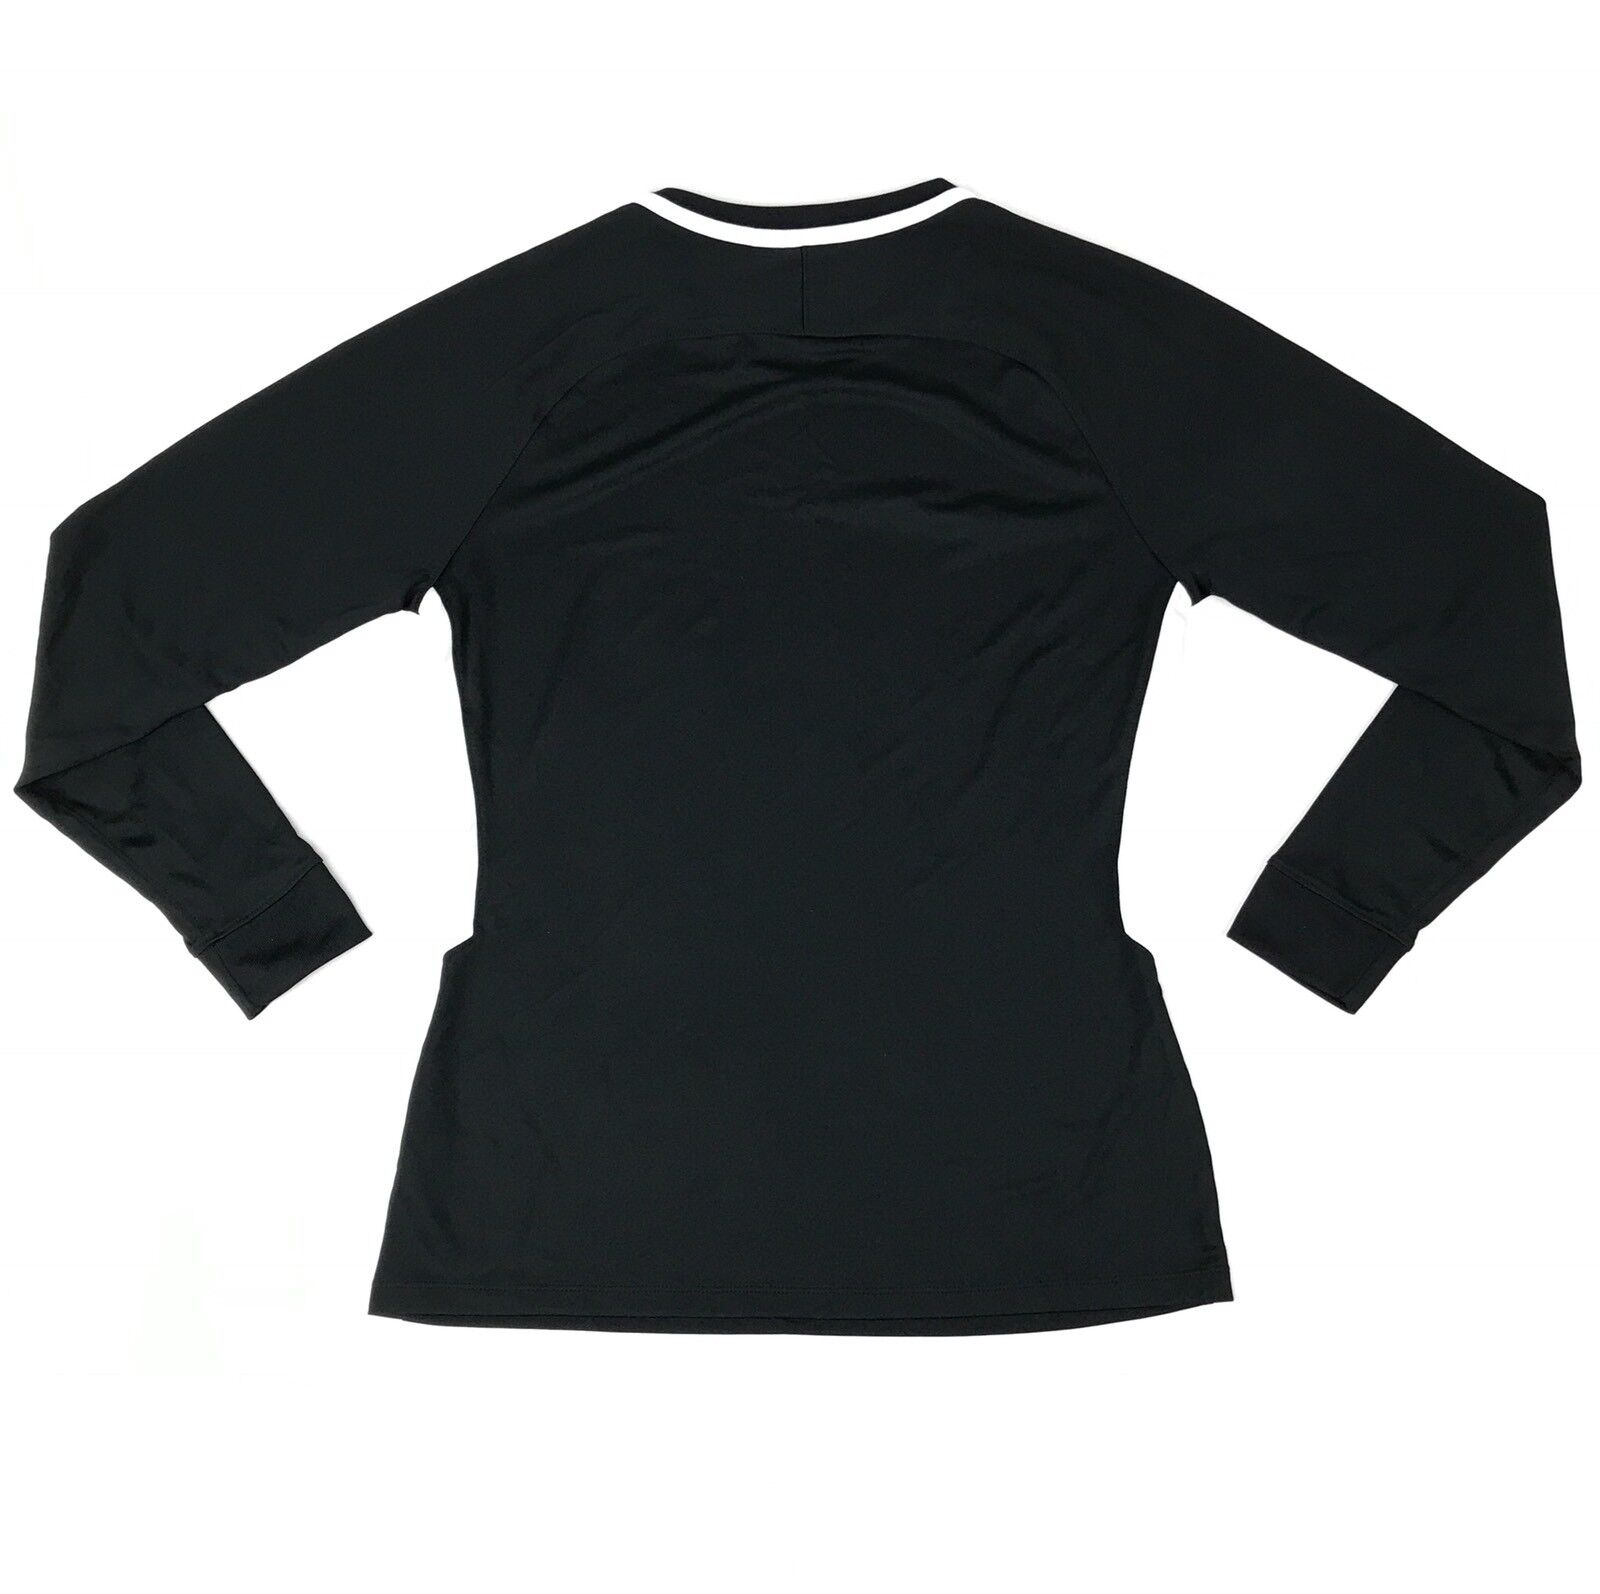 low priced 2827e 8a51a Details about New Nike Park 3 Soccer Goalkeeper Jersey Women s Medium Black Long  Sleeve